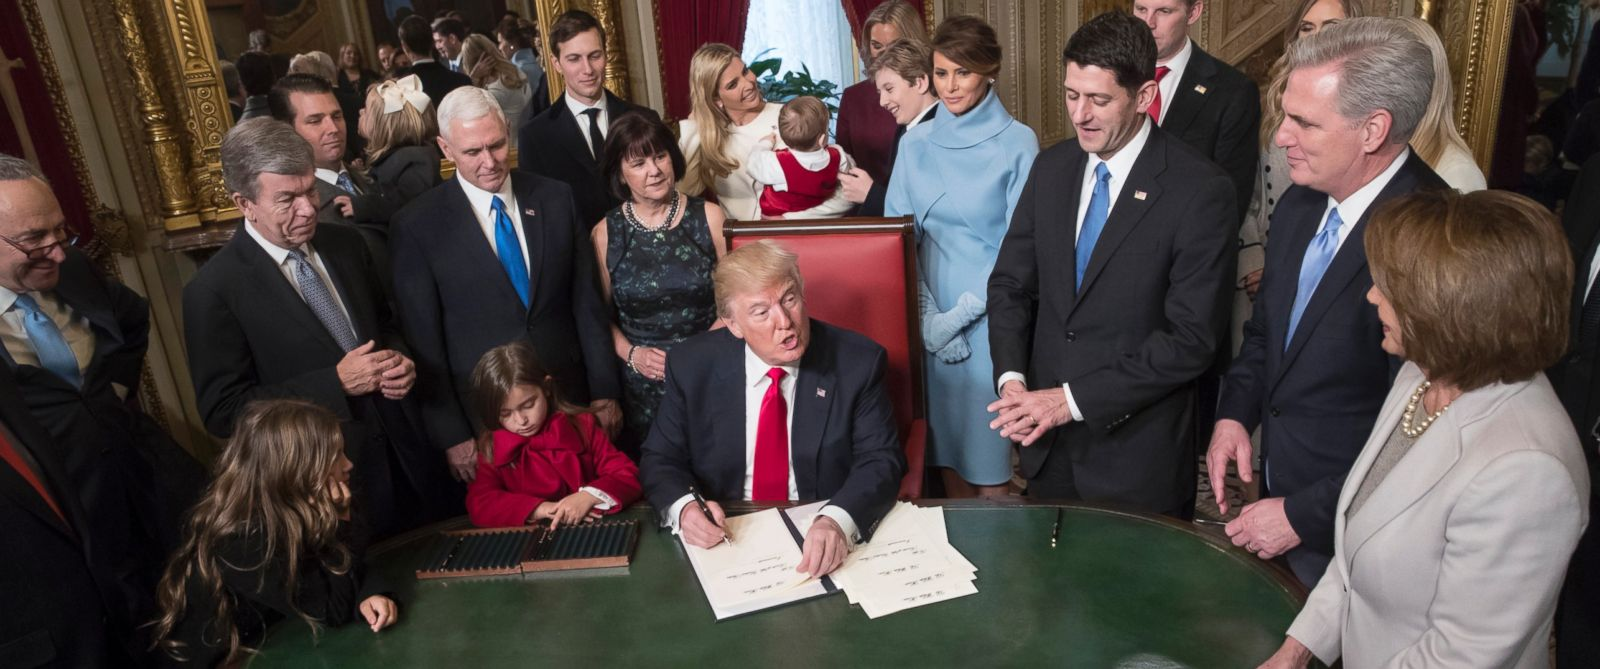 PHOTO: President Donald Trump is joined by the Congressional leadership and his family as he formally signs his cabinet nominations into law, in the Presidents Room of the Senate, at the Capitol in Washington, Jan. 20, 2017.